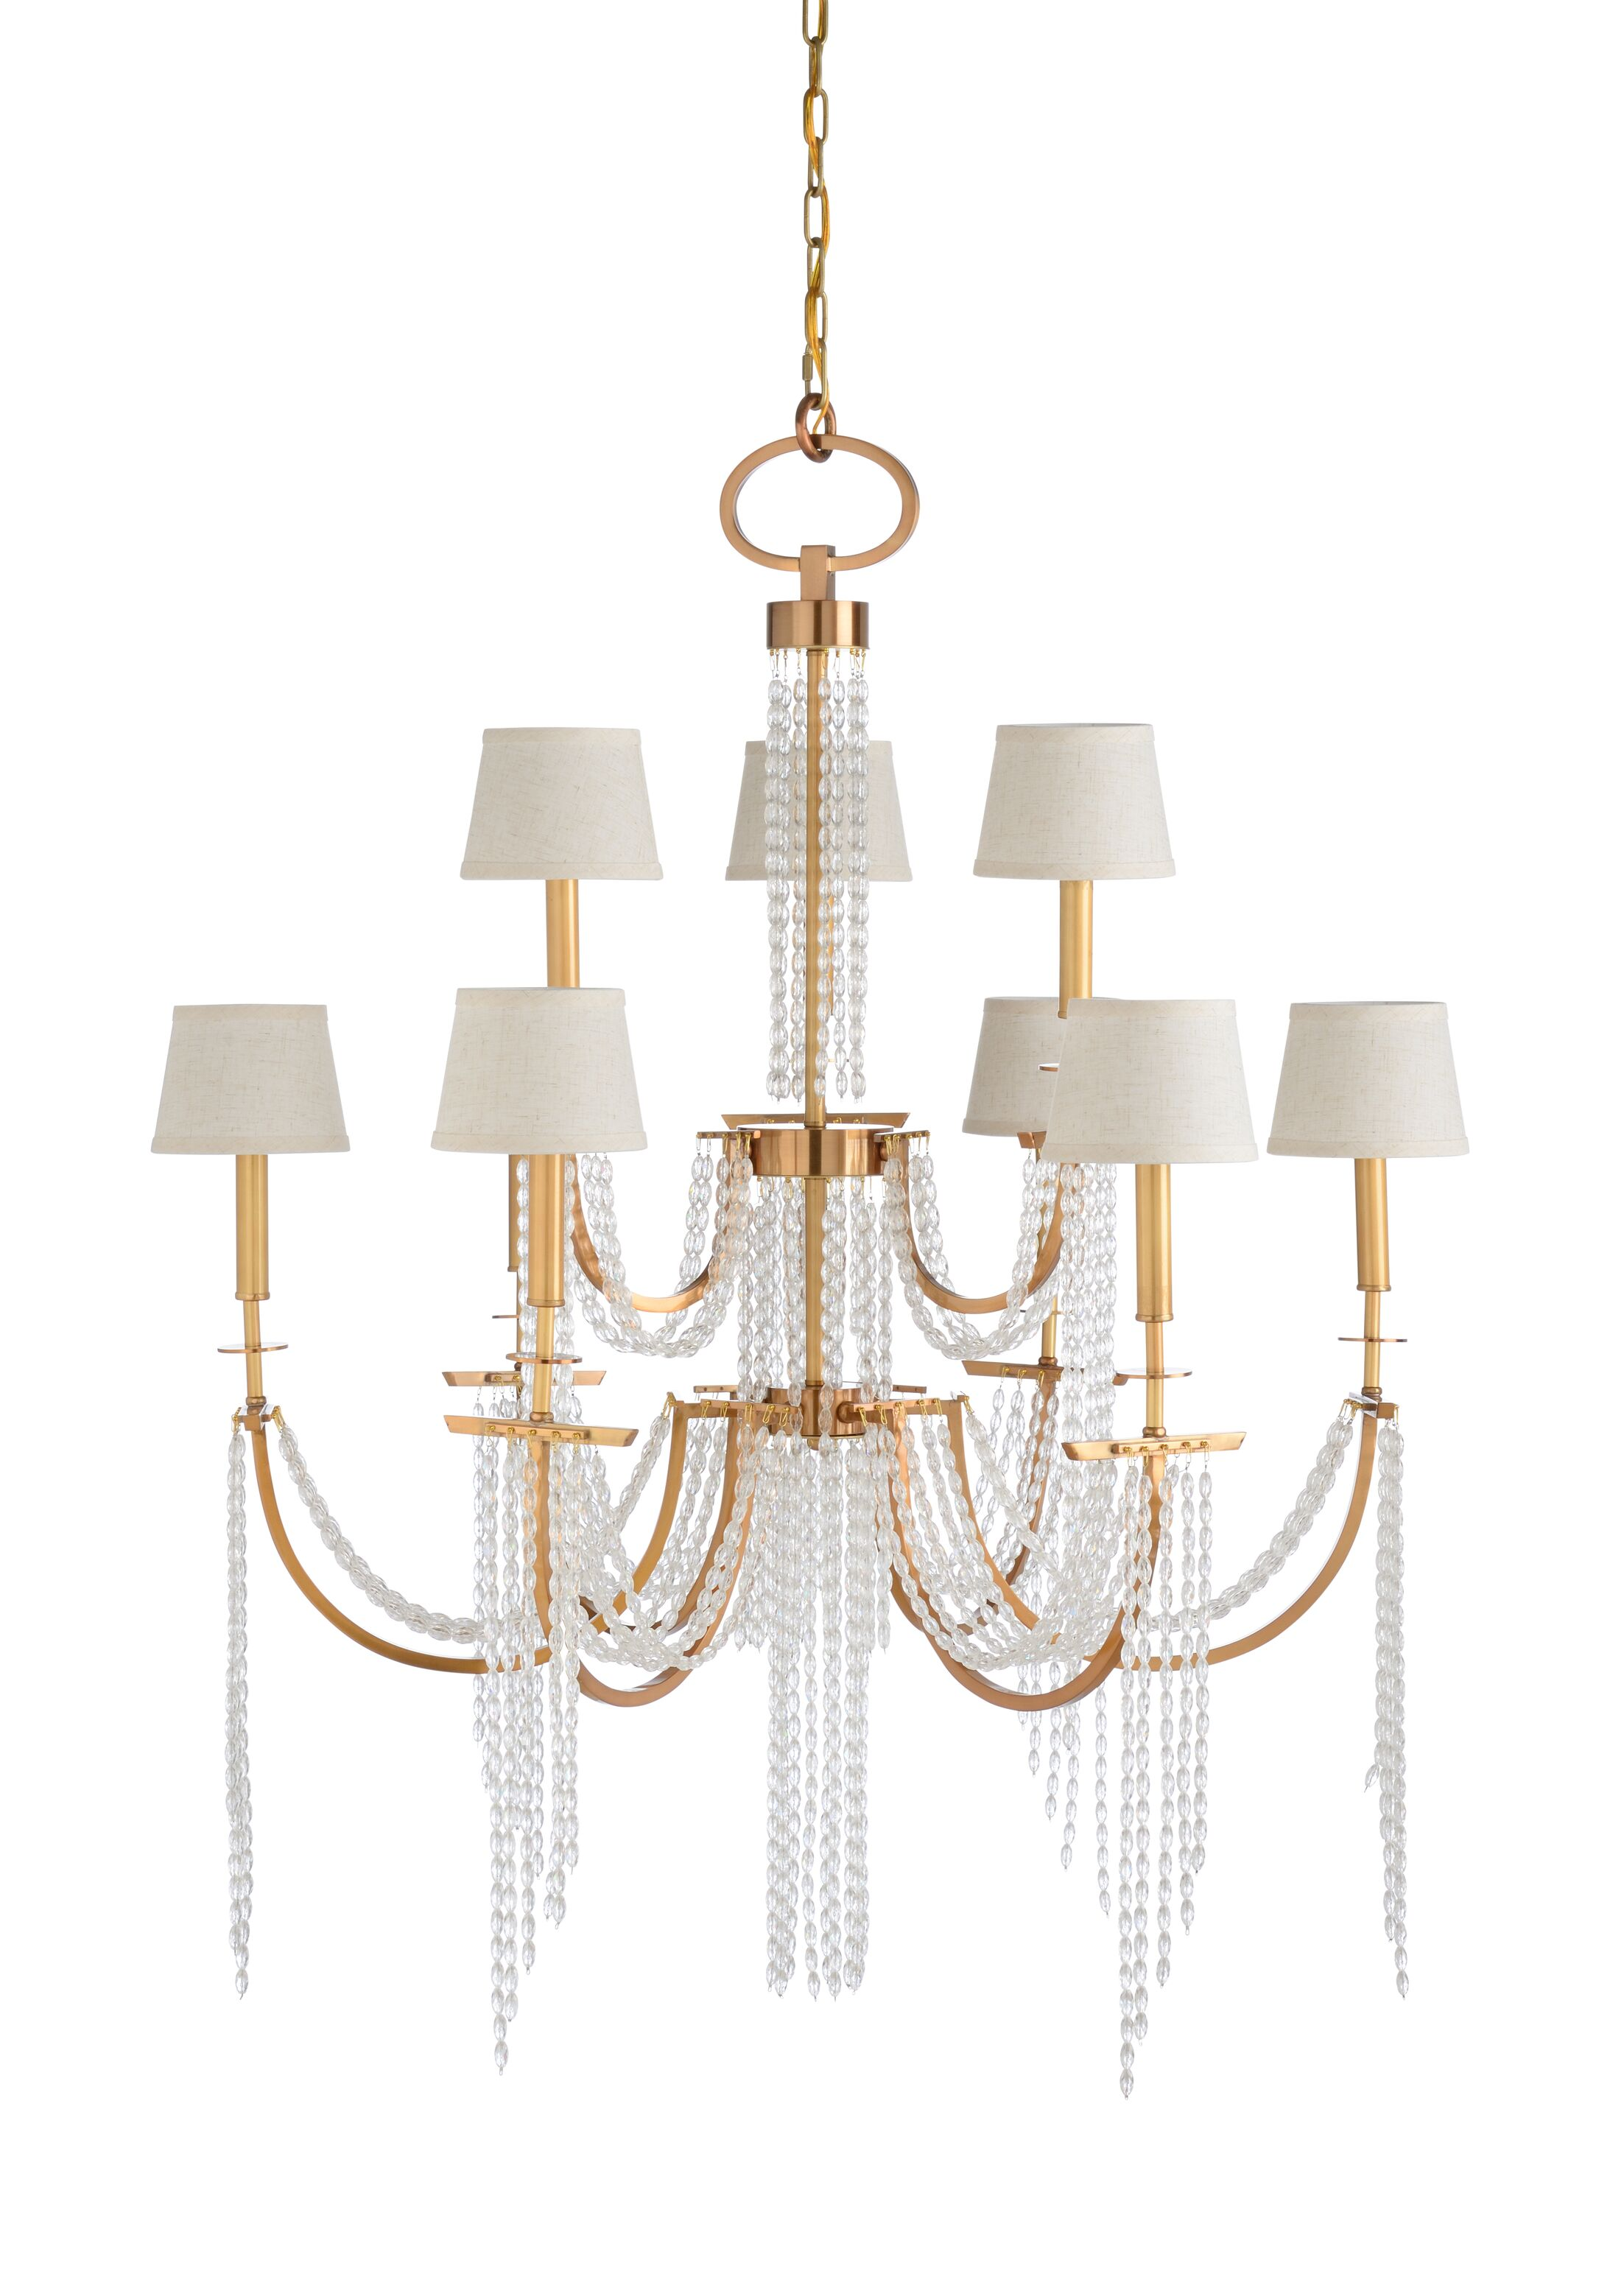 Mackie 9-Light Shaded Chandelier